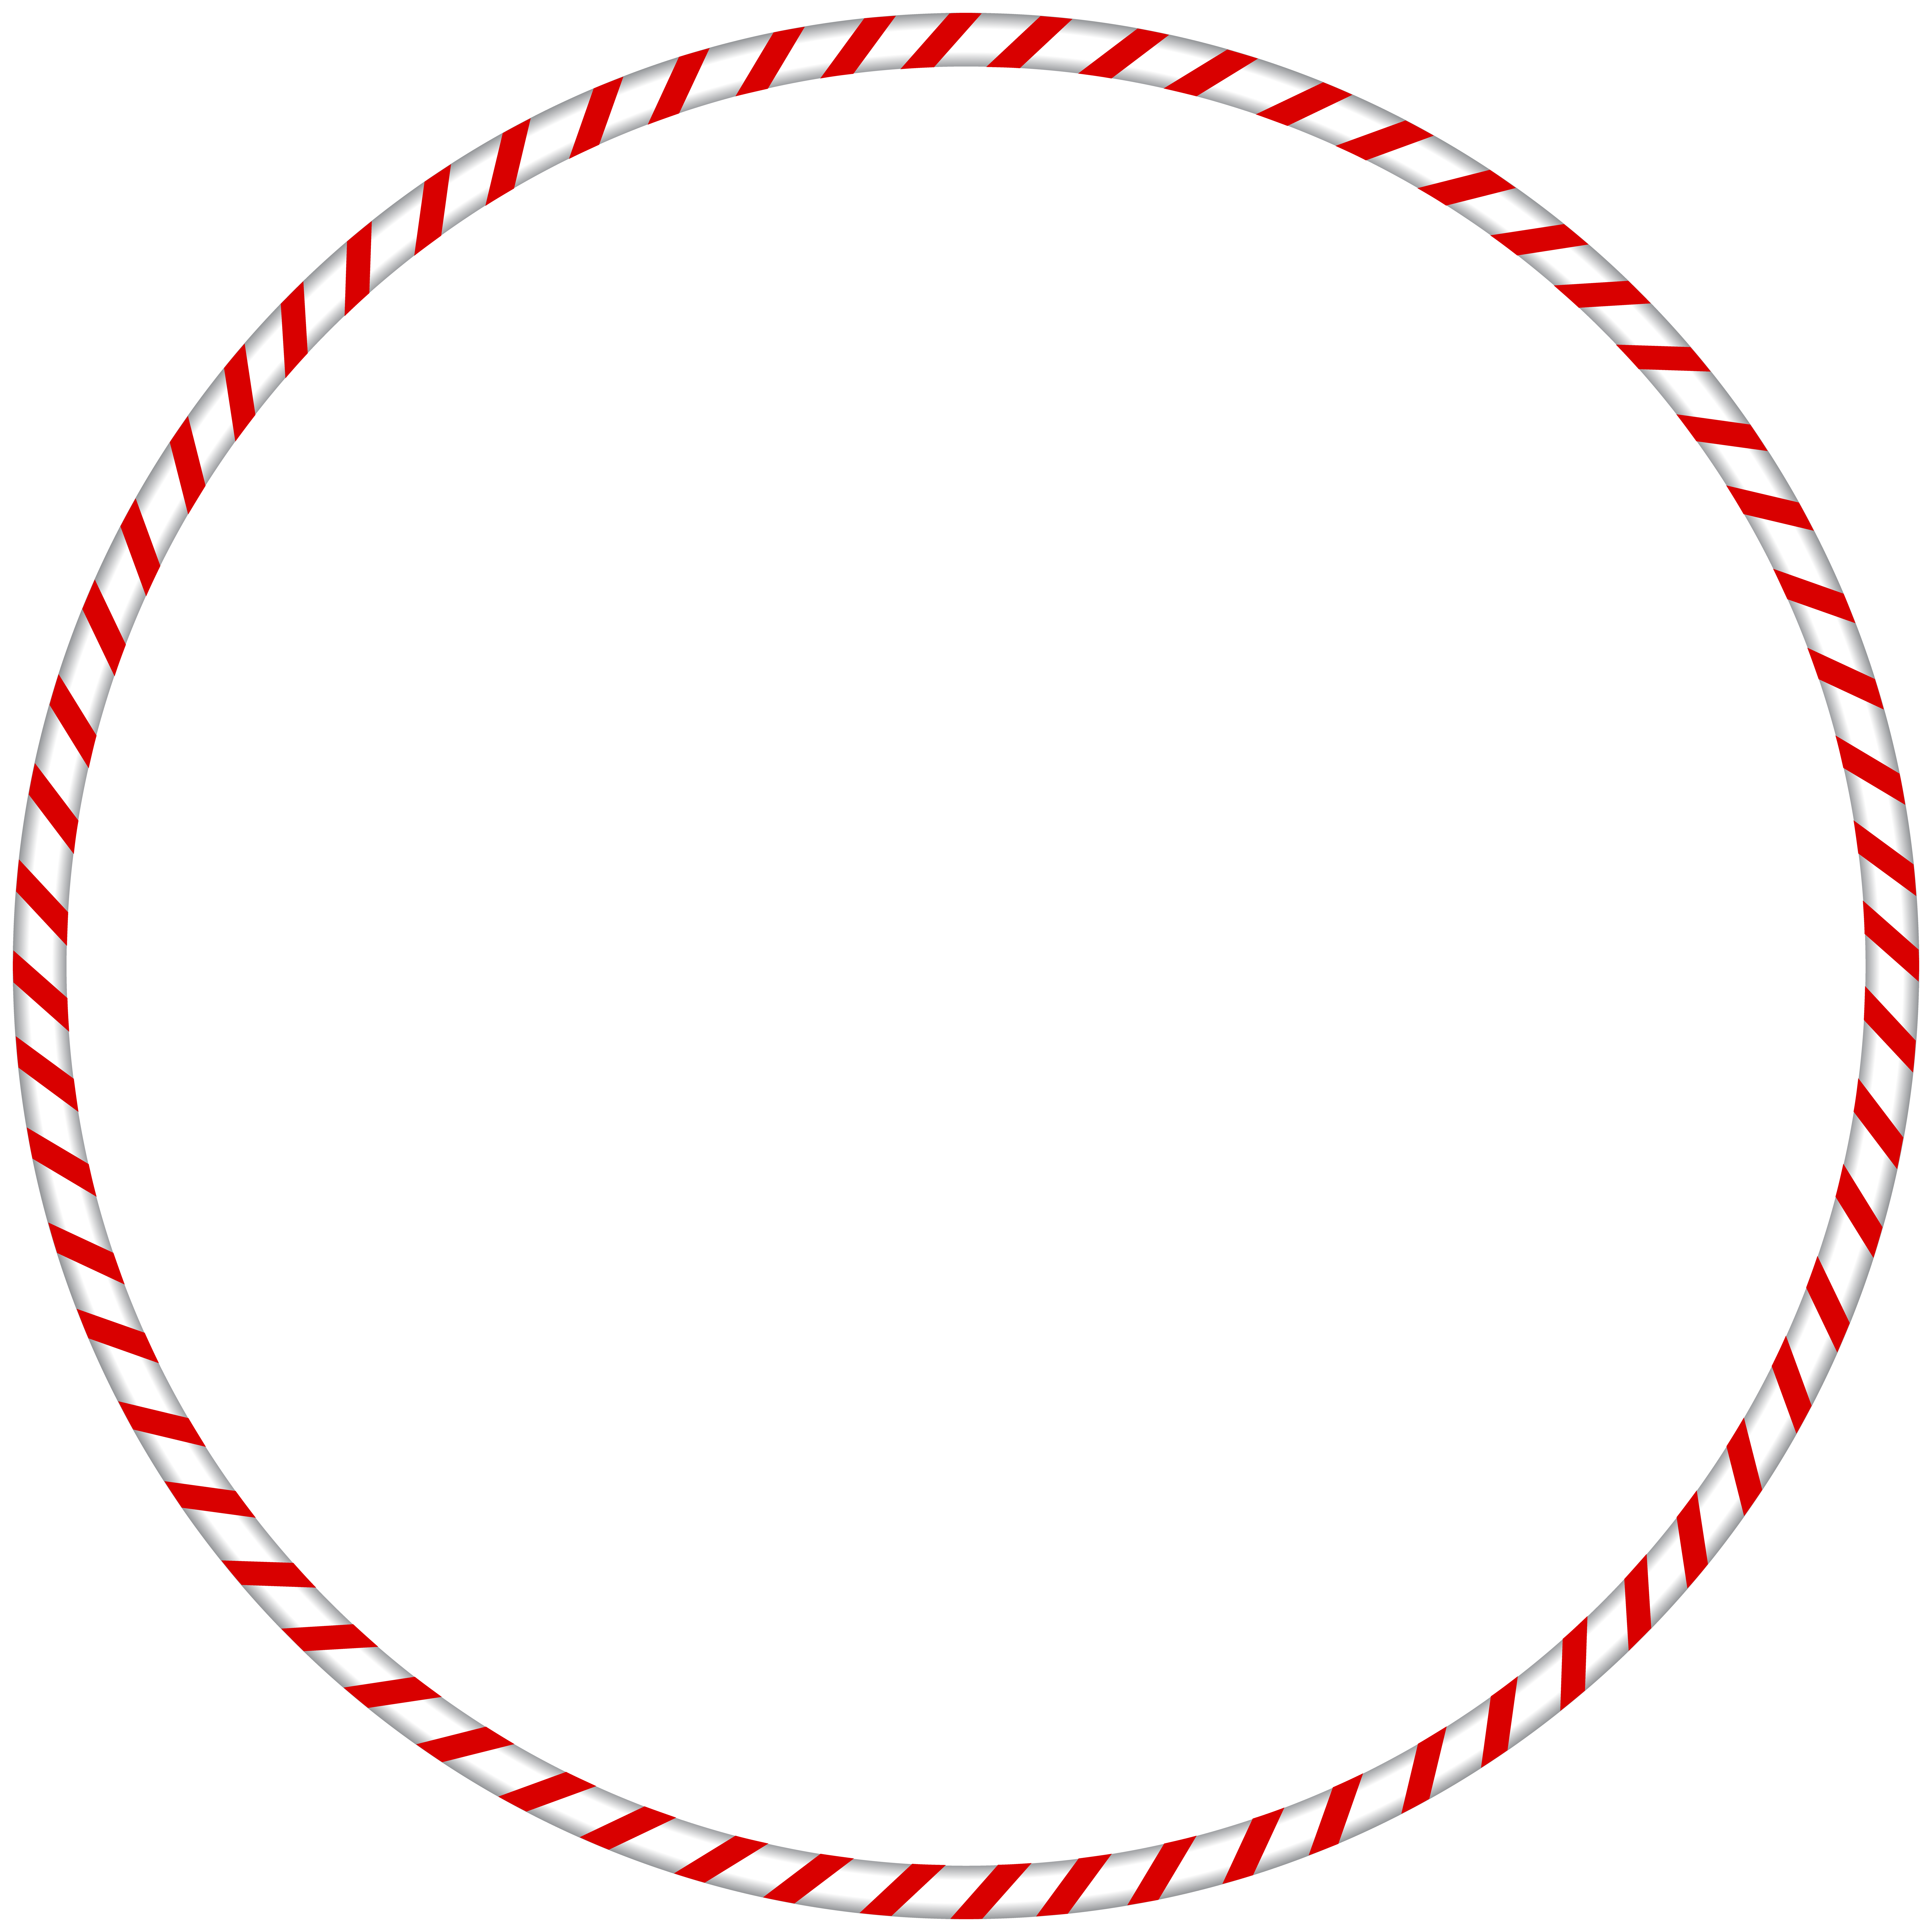 Candy cane border png. Christmas spearmint round frame